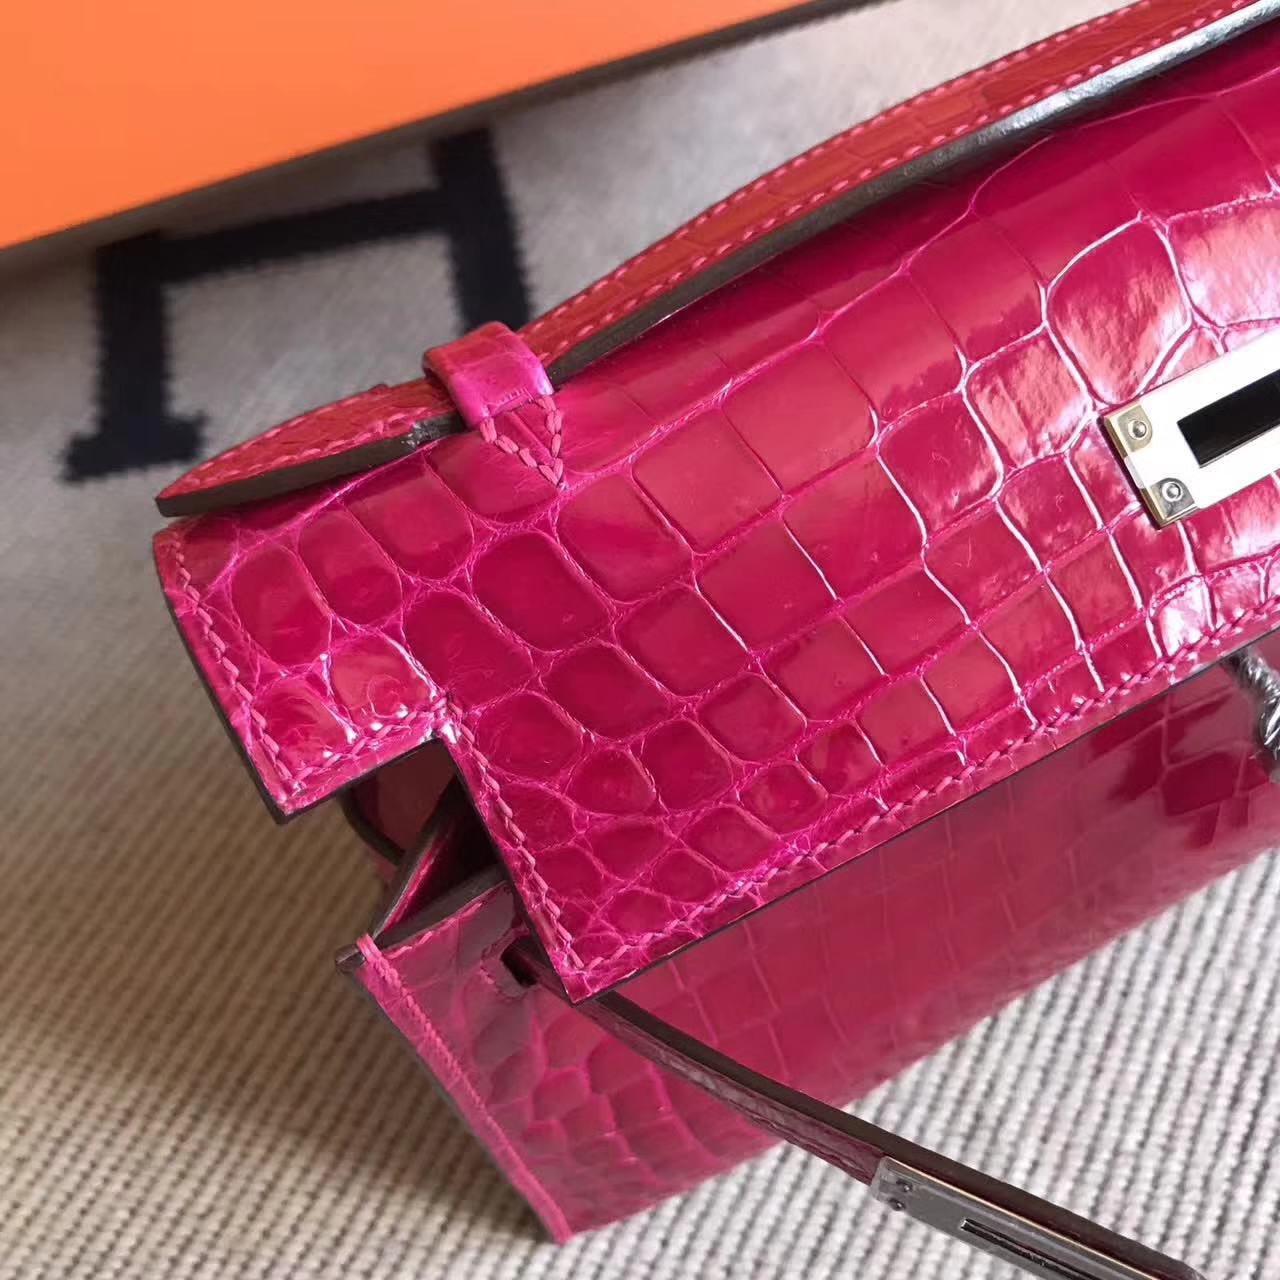 Hermes Minikelly Clutch Bag in J5 Rose Scheherazade Crocodile Leather Silver Hardware